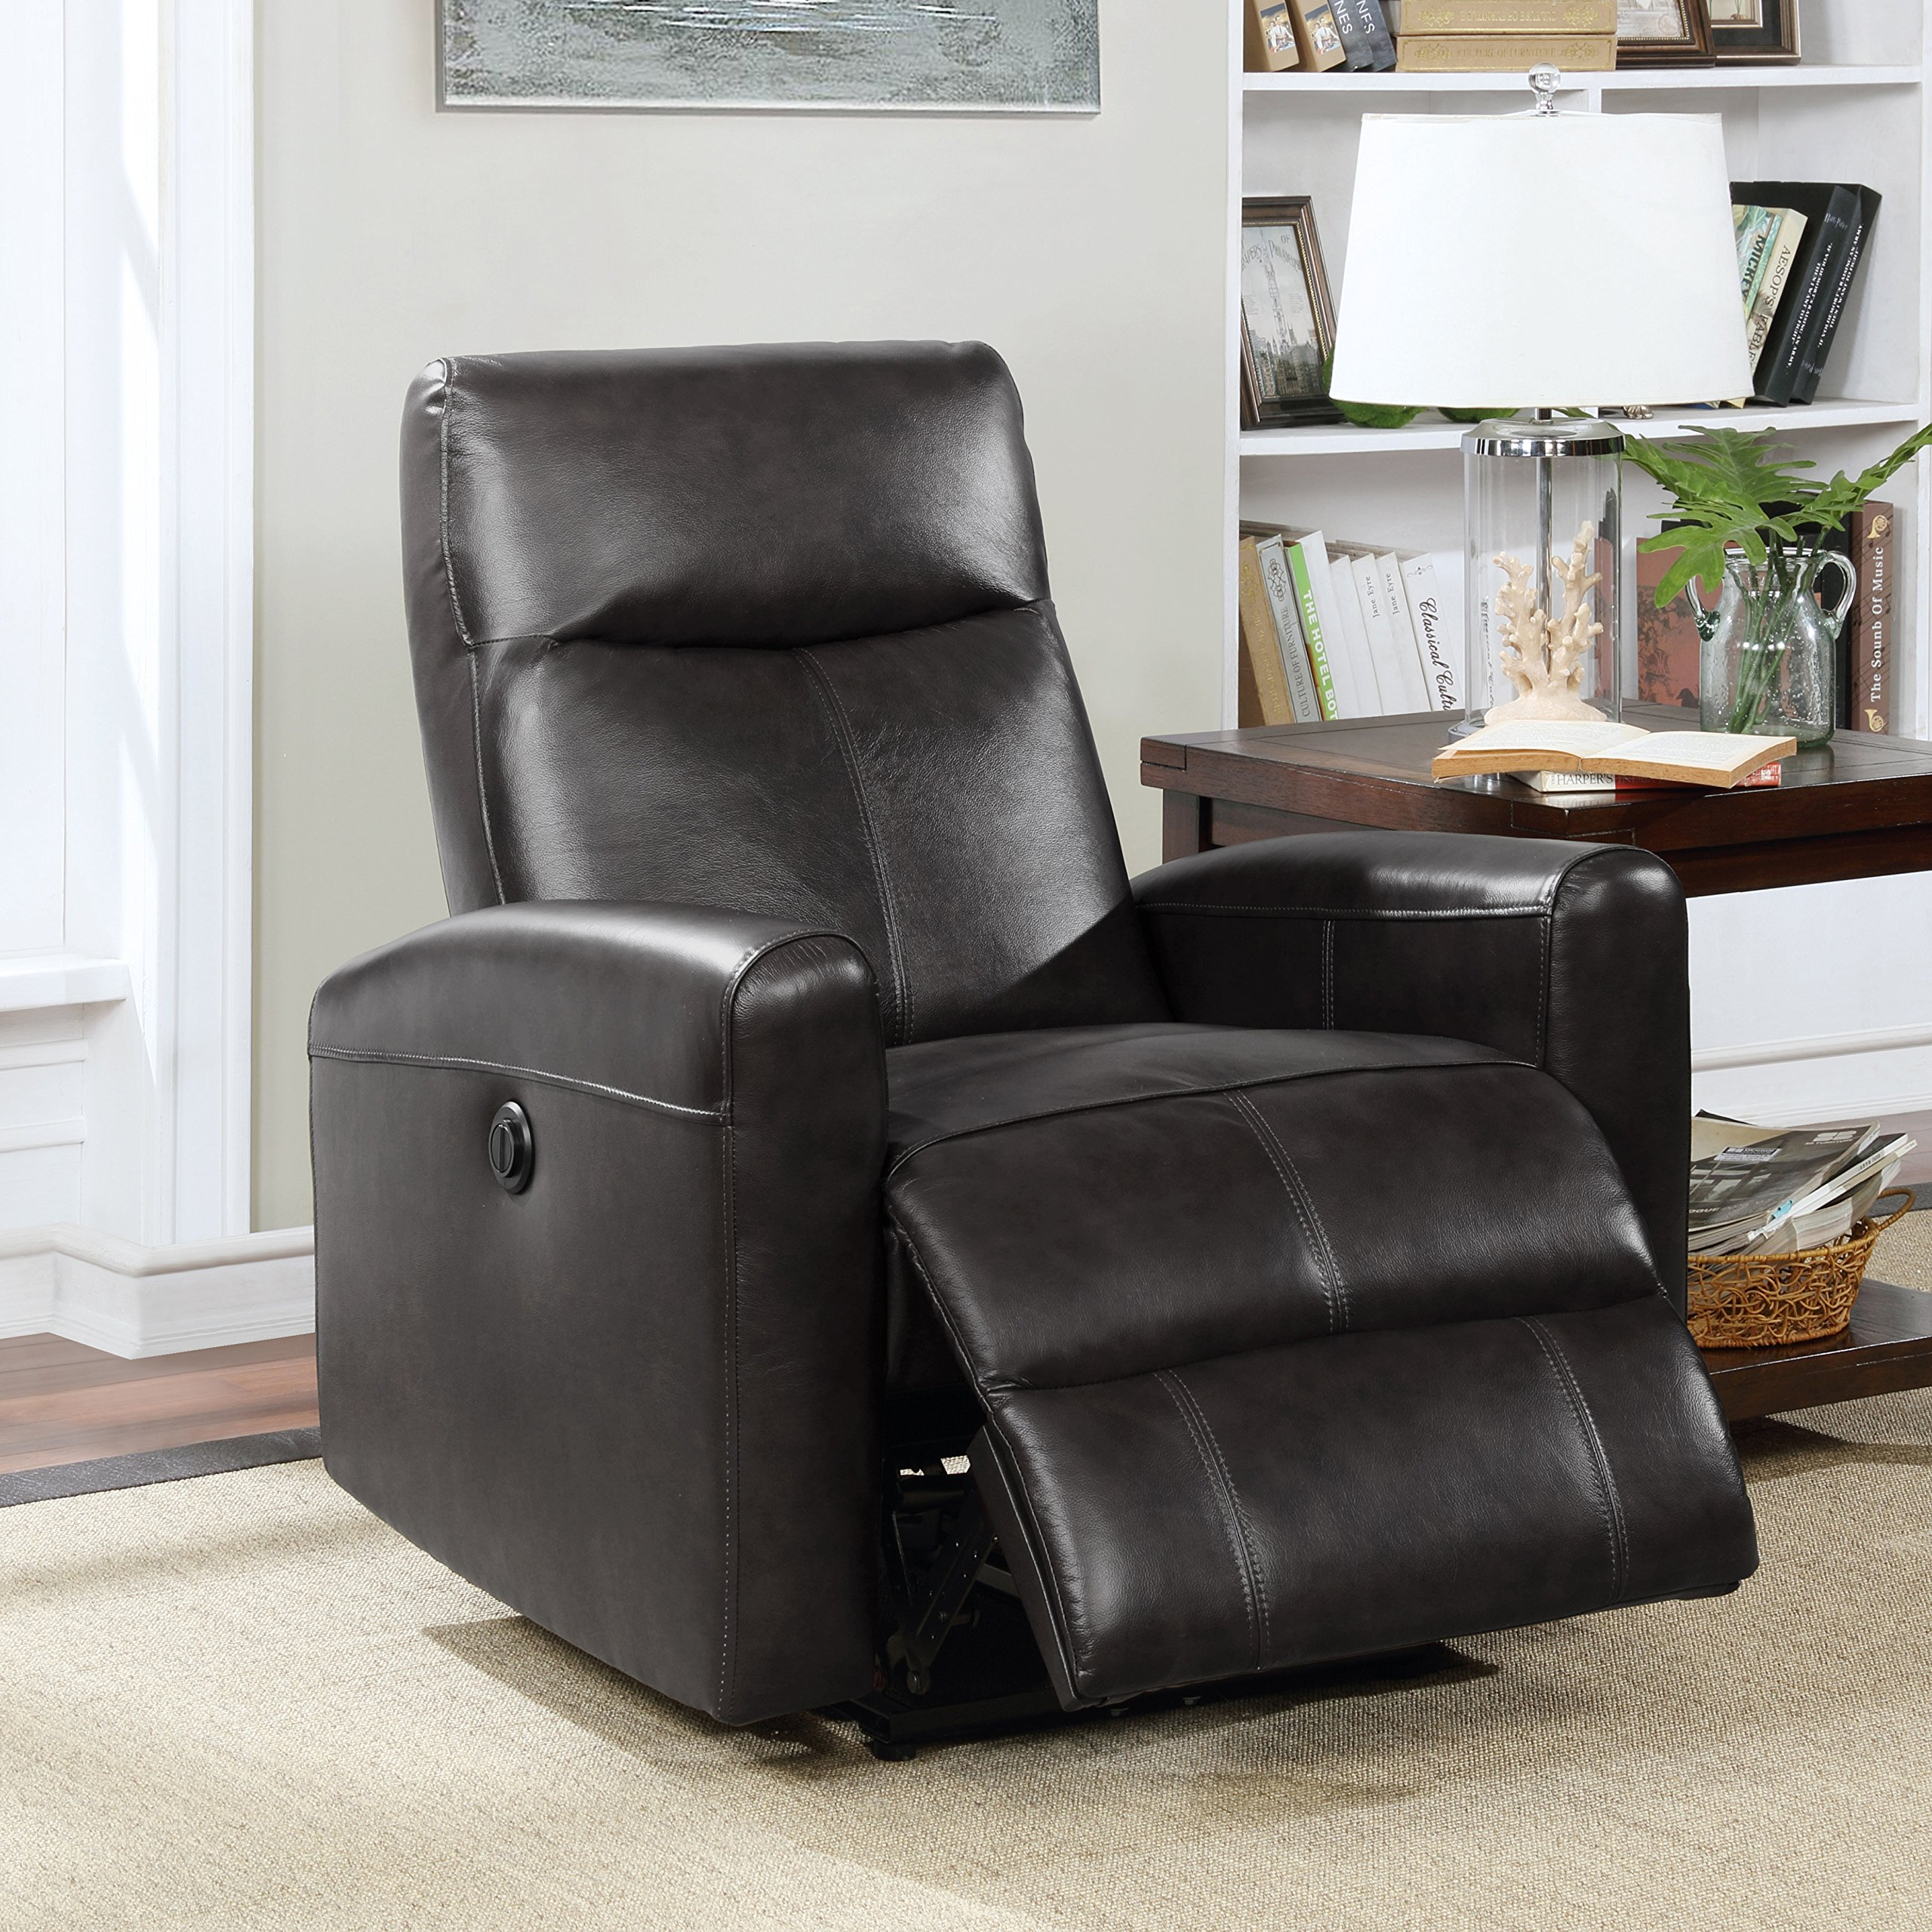 Christies Home Living Eli Collection Contemporary Leather Upholstered Living Room Electric Recliner Power Chair, Black